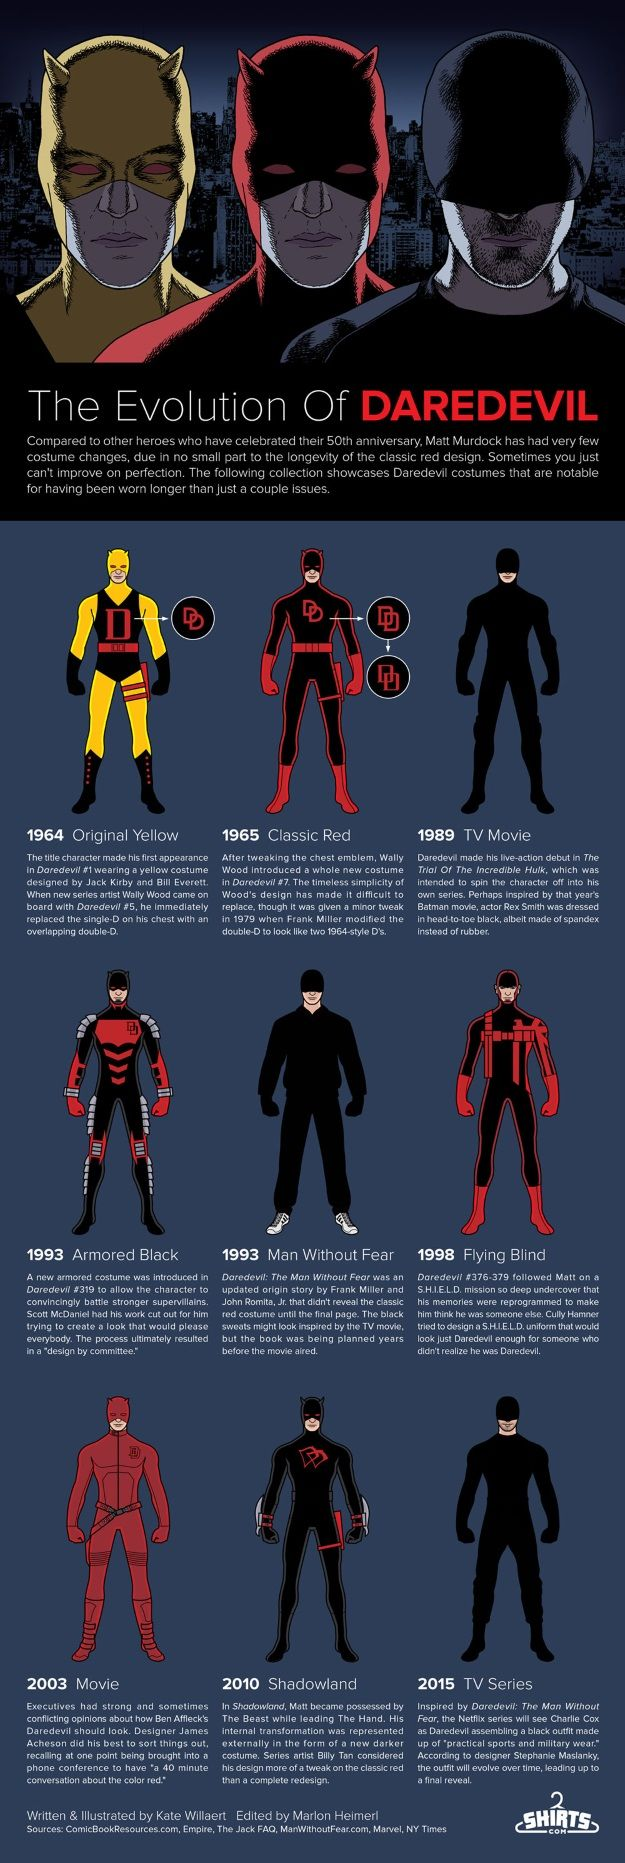 The Evolution of Daredevil - brush up on your superhero costume knowledge in time for the new Daredevil Netflix series with this infographic.